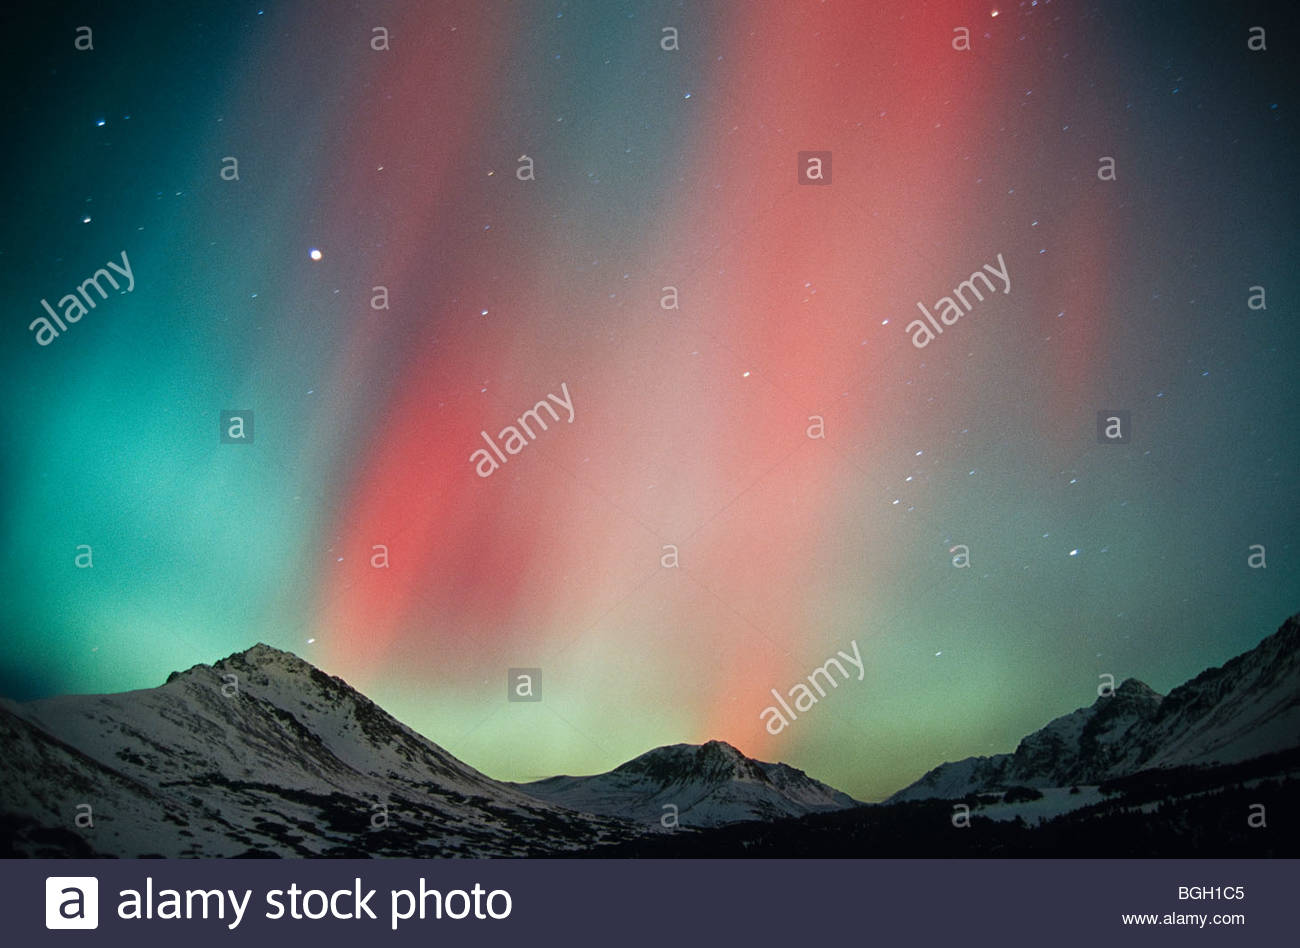 Alaska, Anchorage. Aurora, Chugach Mountains. Stockbild